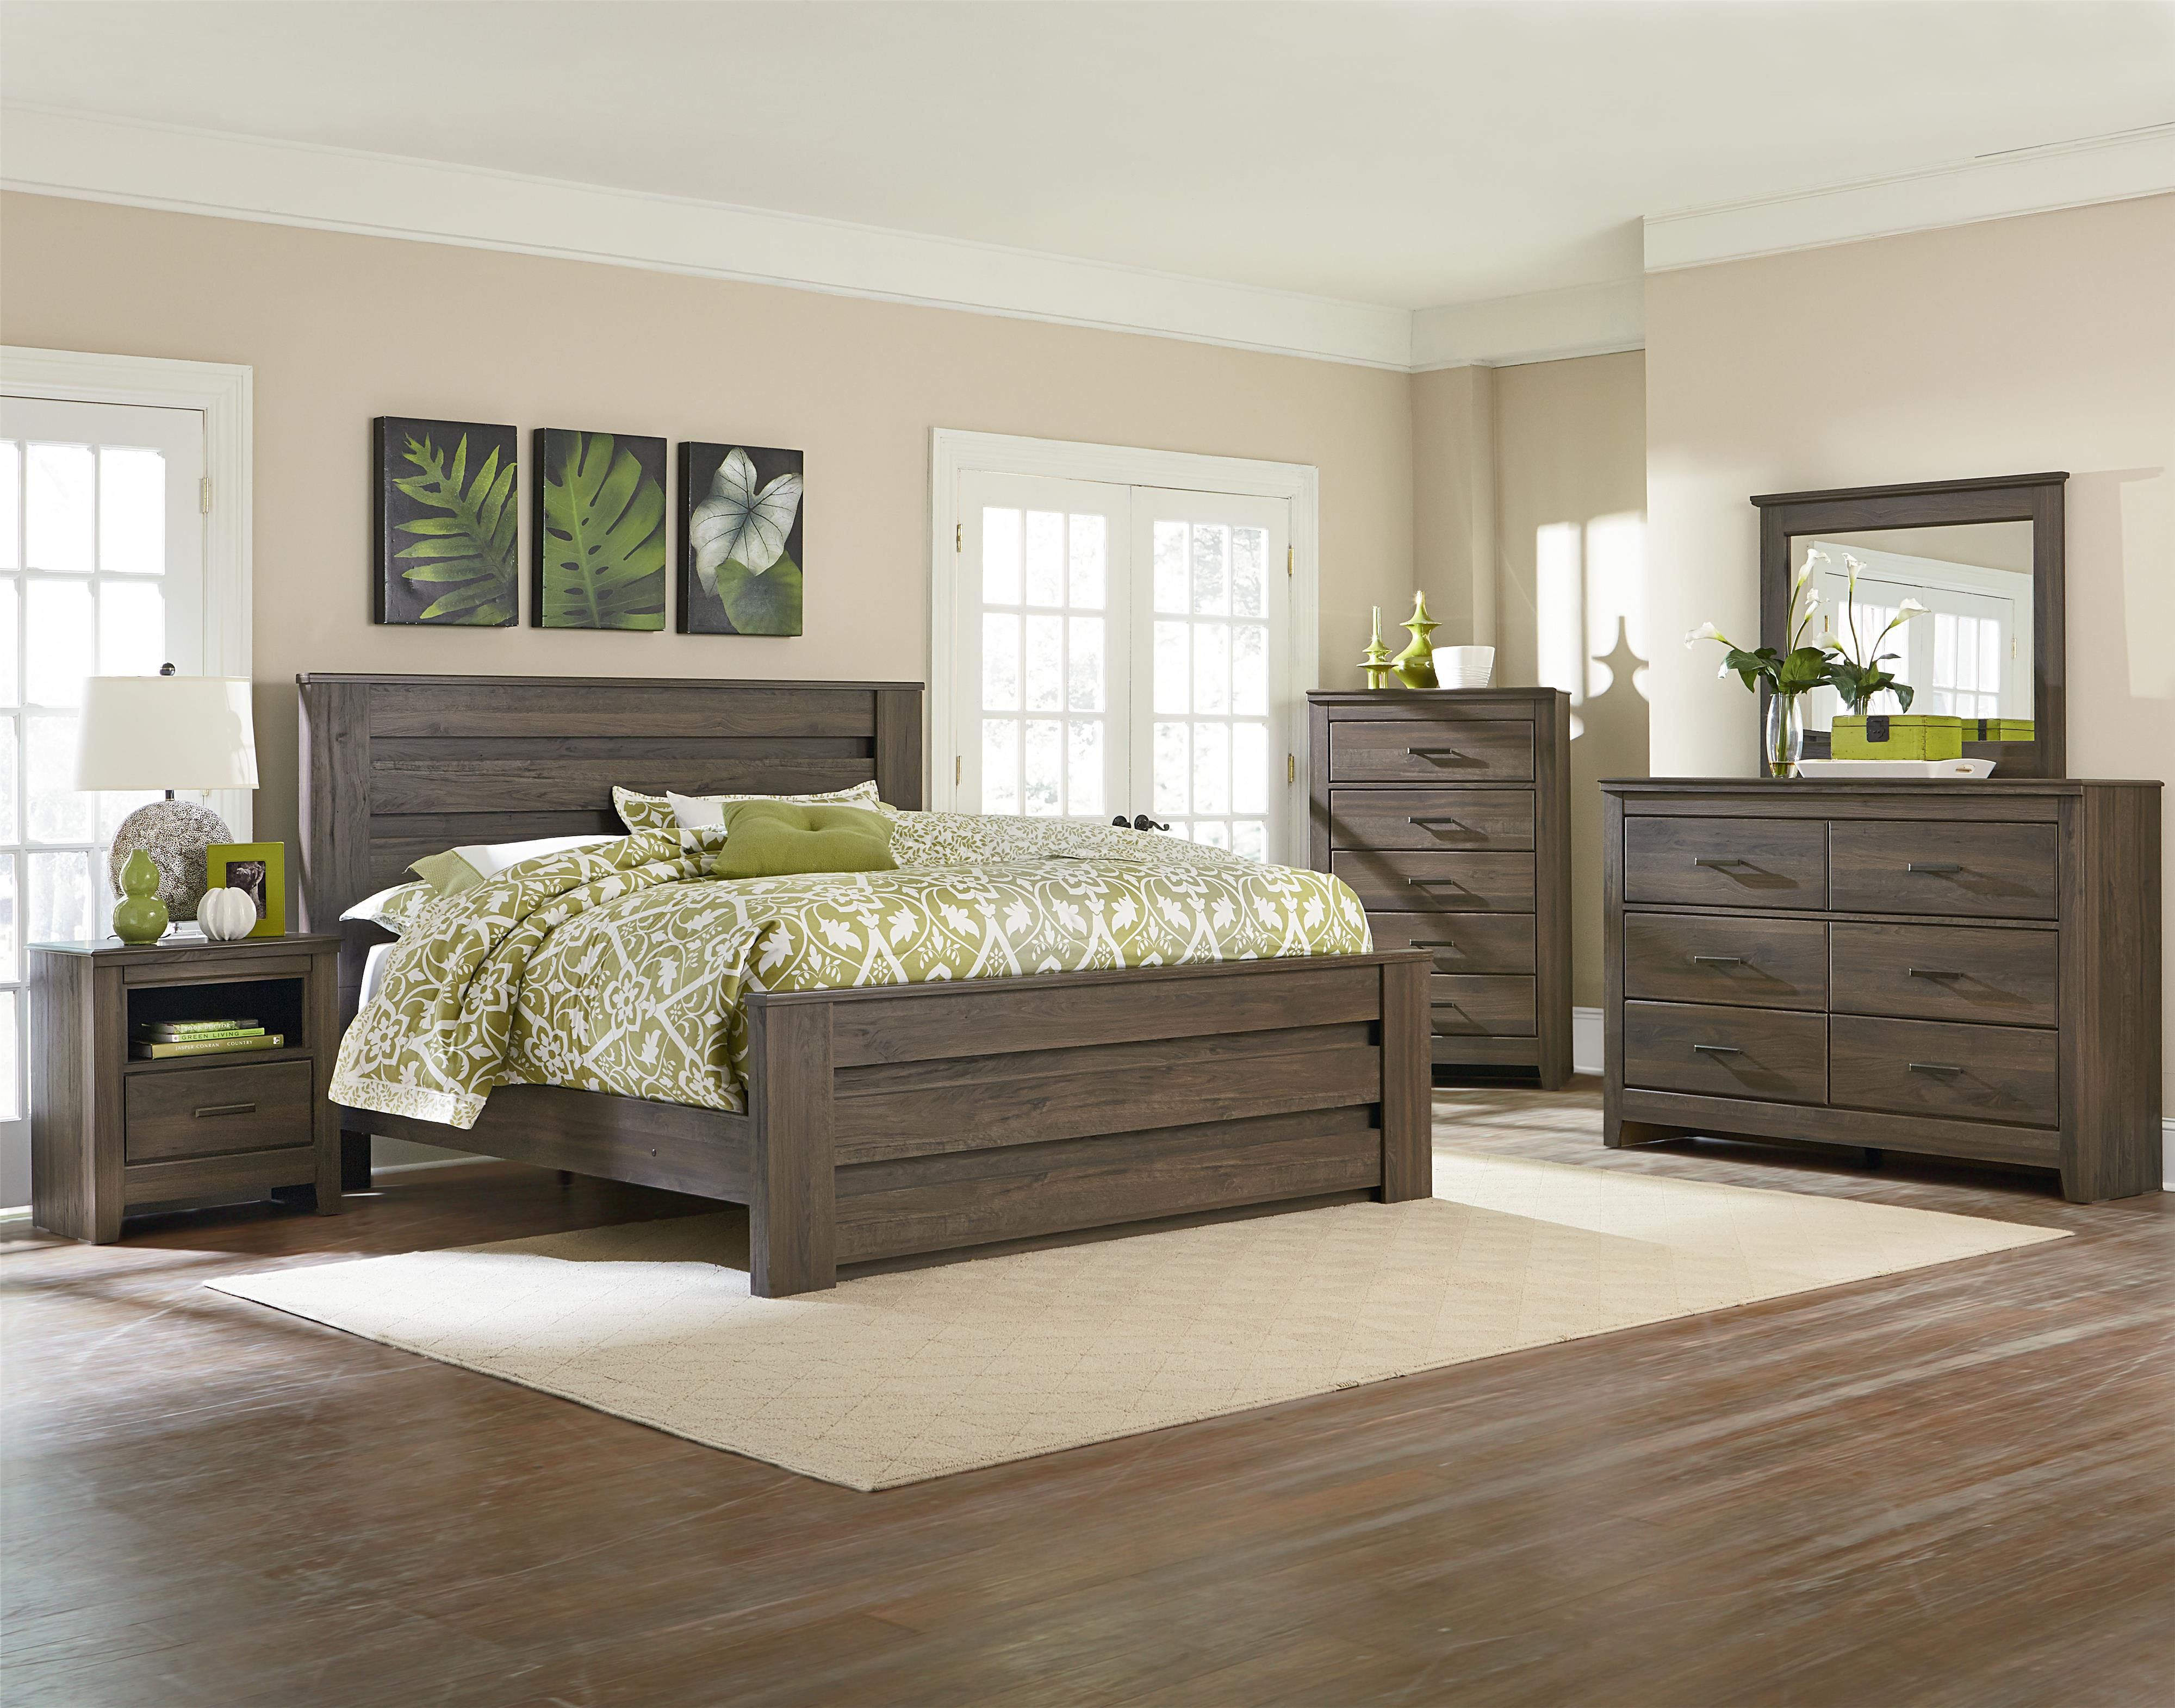 Standard Furniture Hayward King Bedroom Group - Item Number: 56510 K Bedroom Group 2